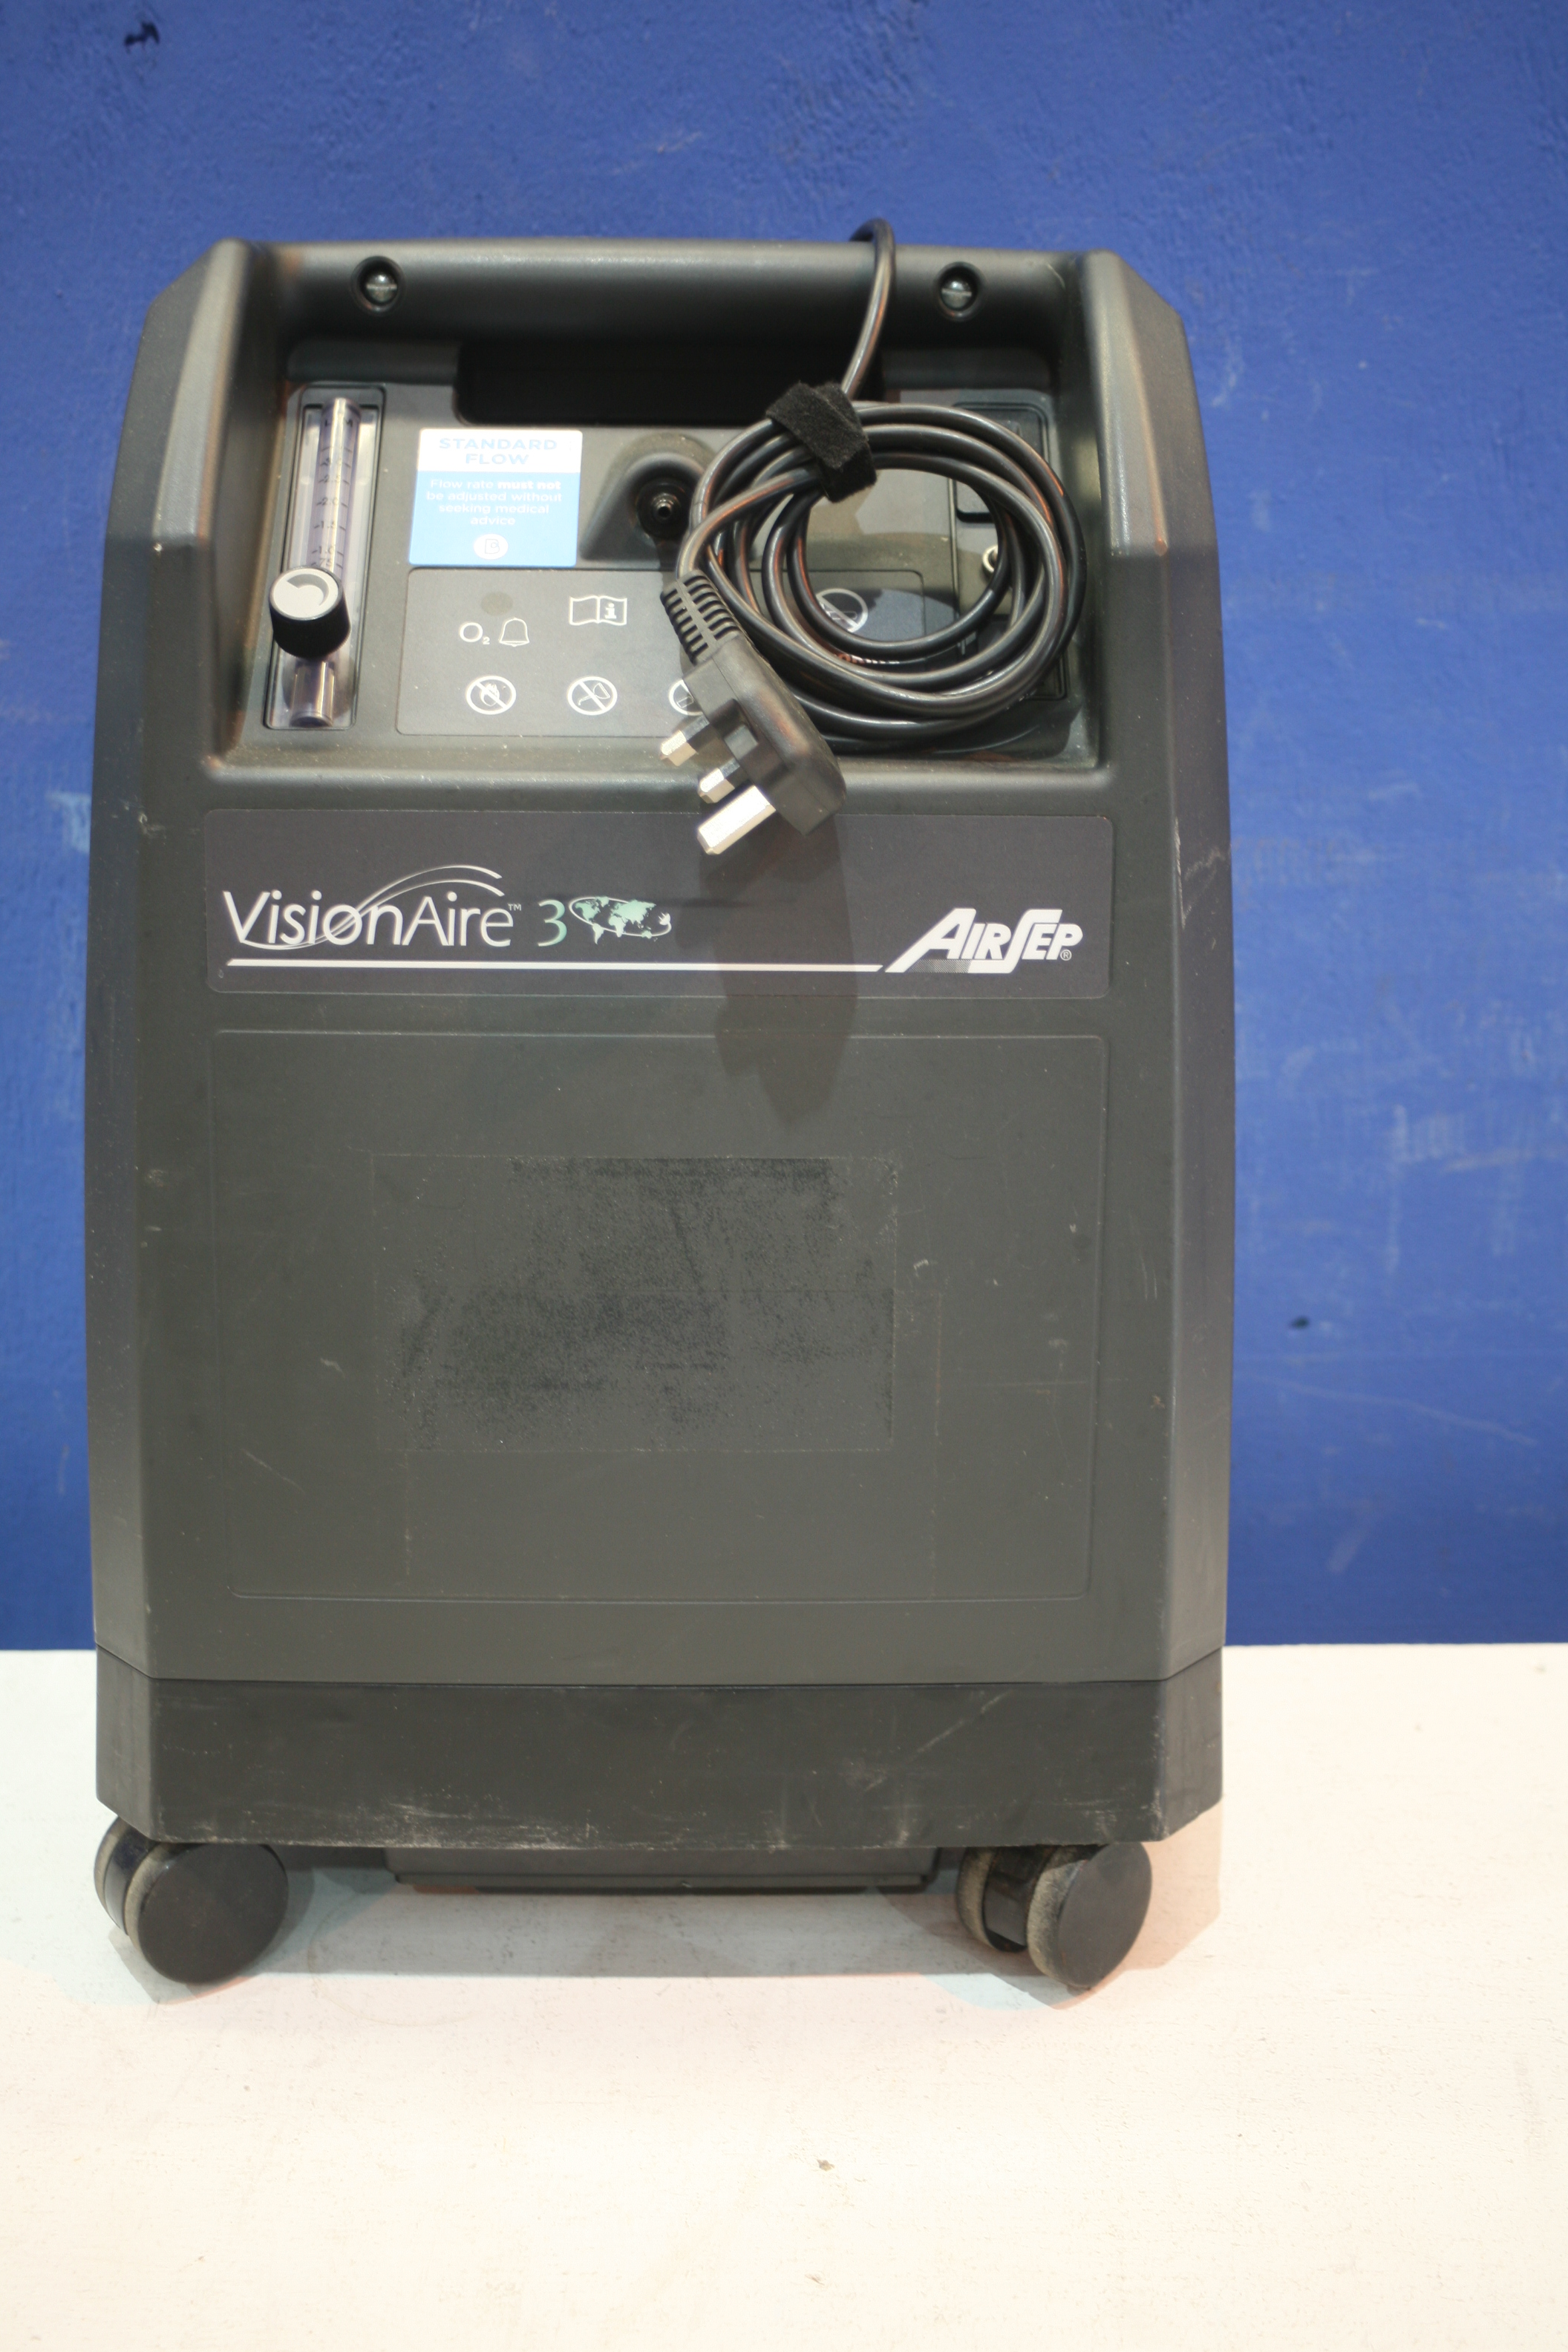 Lot 174 - Airsep Vision Aire 3 Oxygen Concentrator *Powers Up*